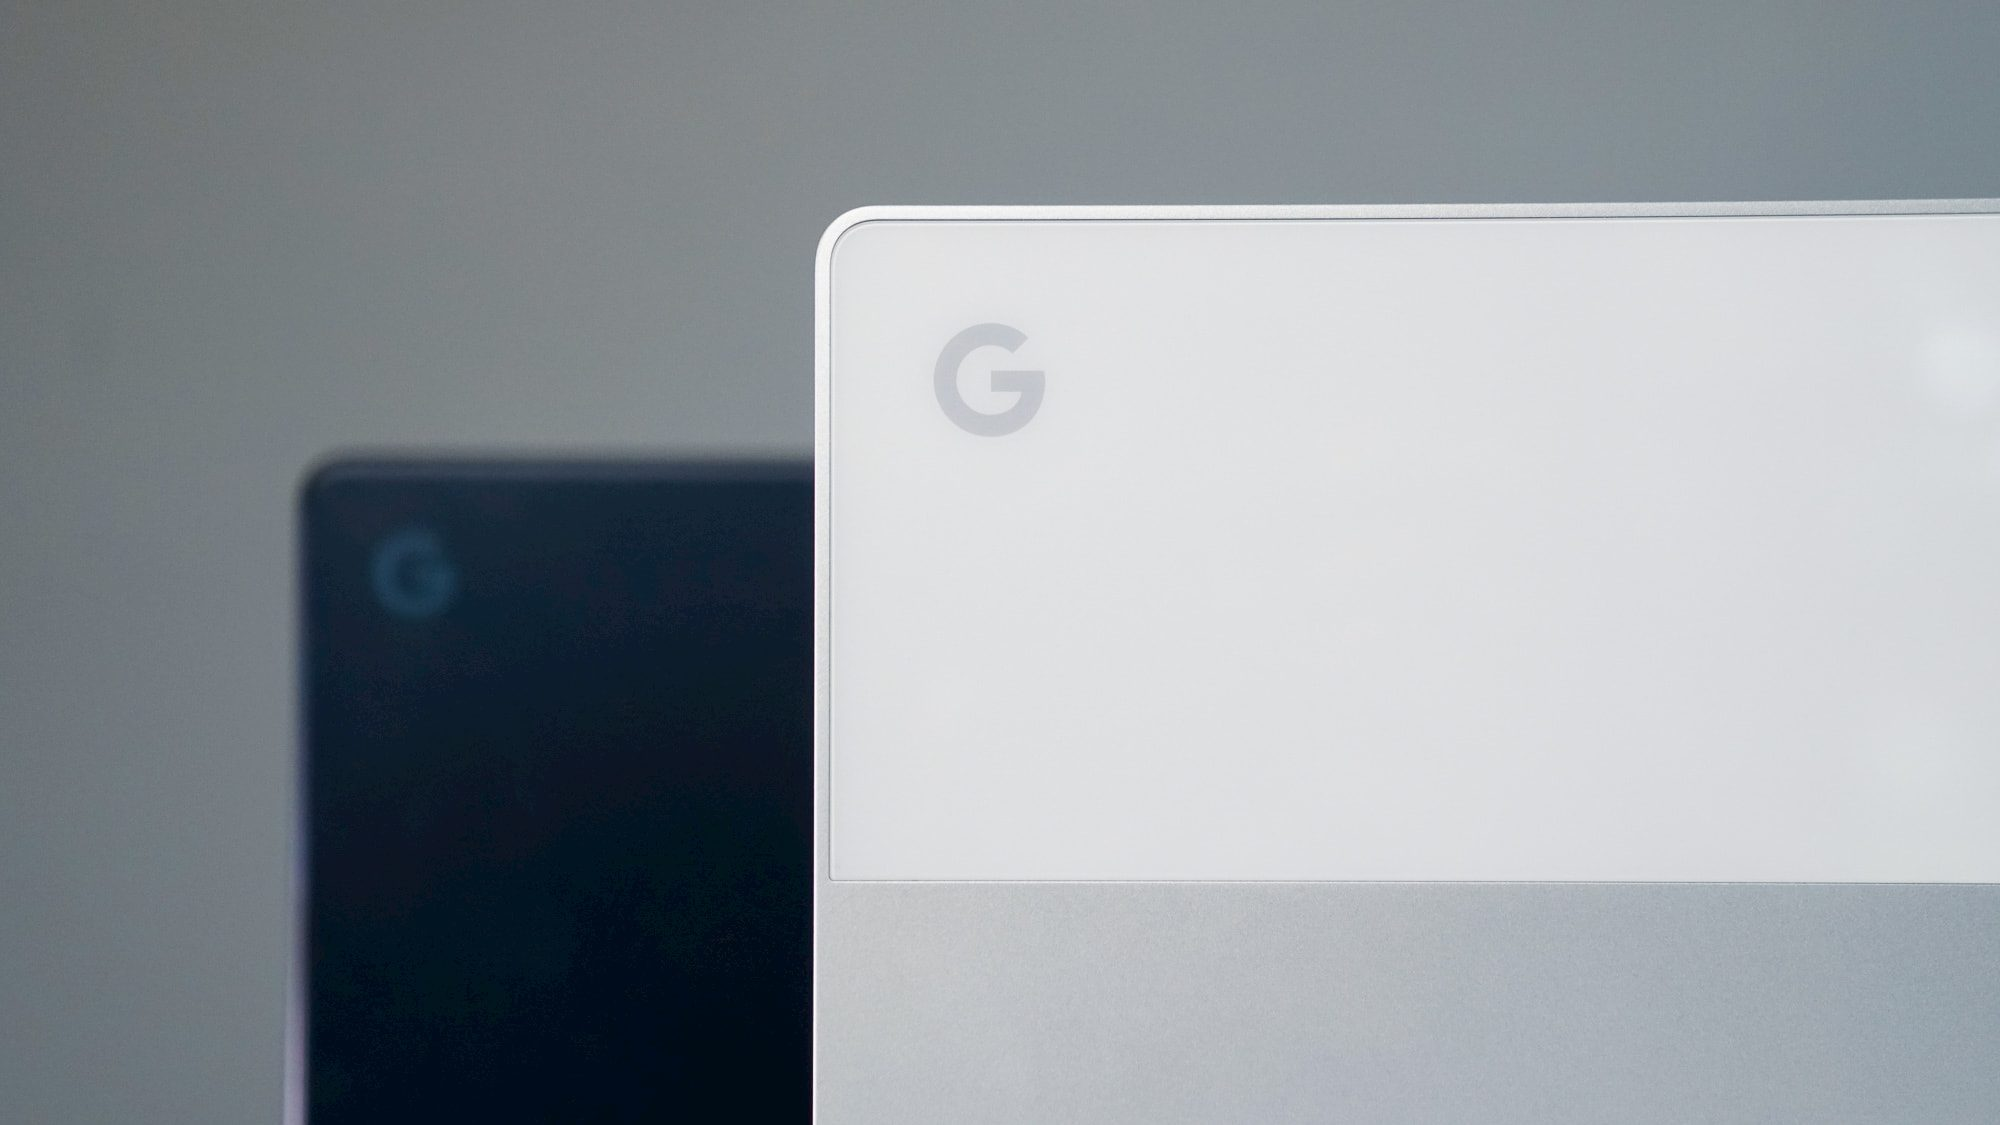 Likely Pixelbook 2 'Atlas' Passes Through FCC, September Google Hardware Event Possible